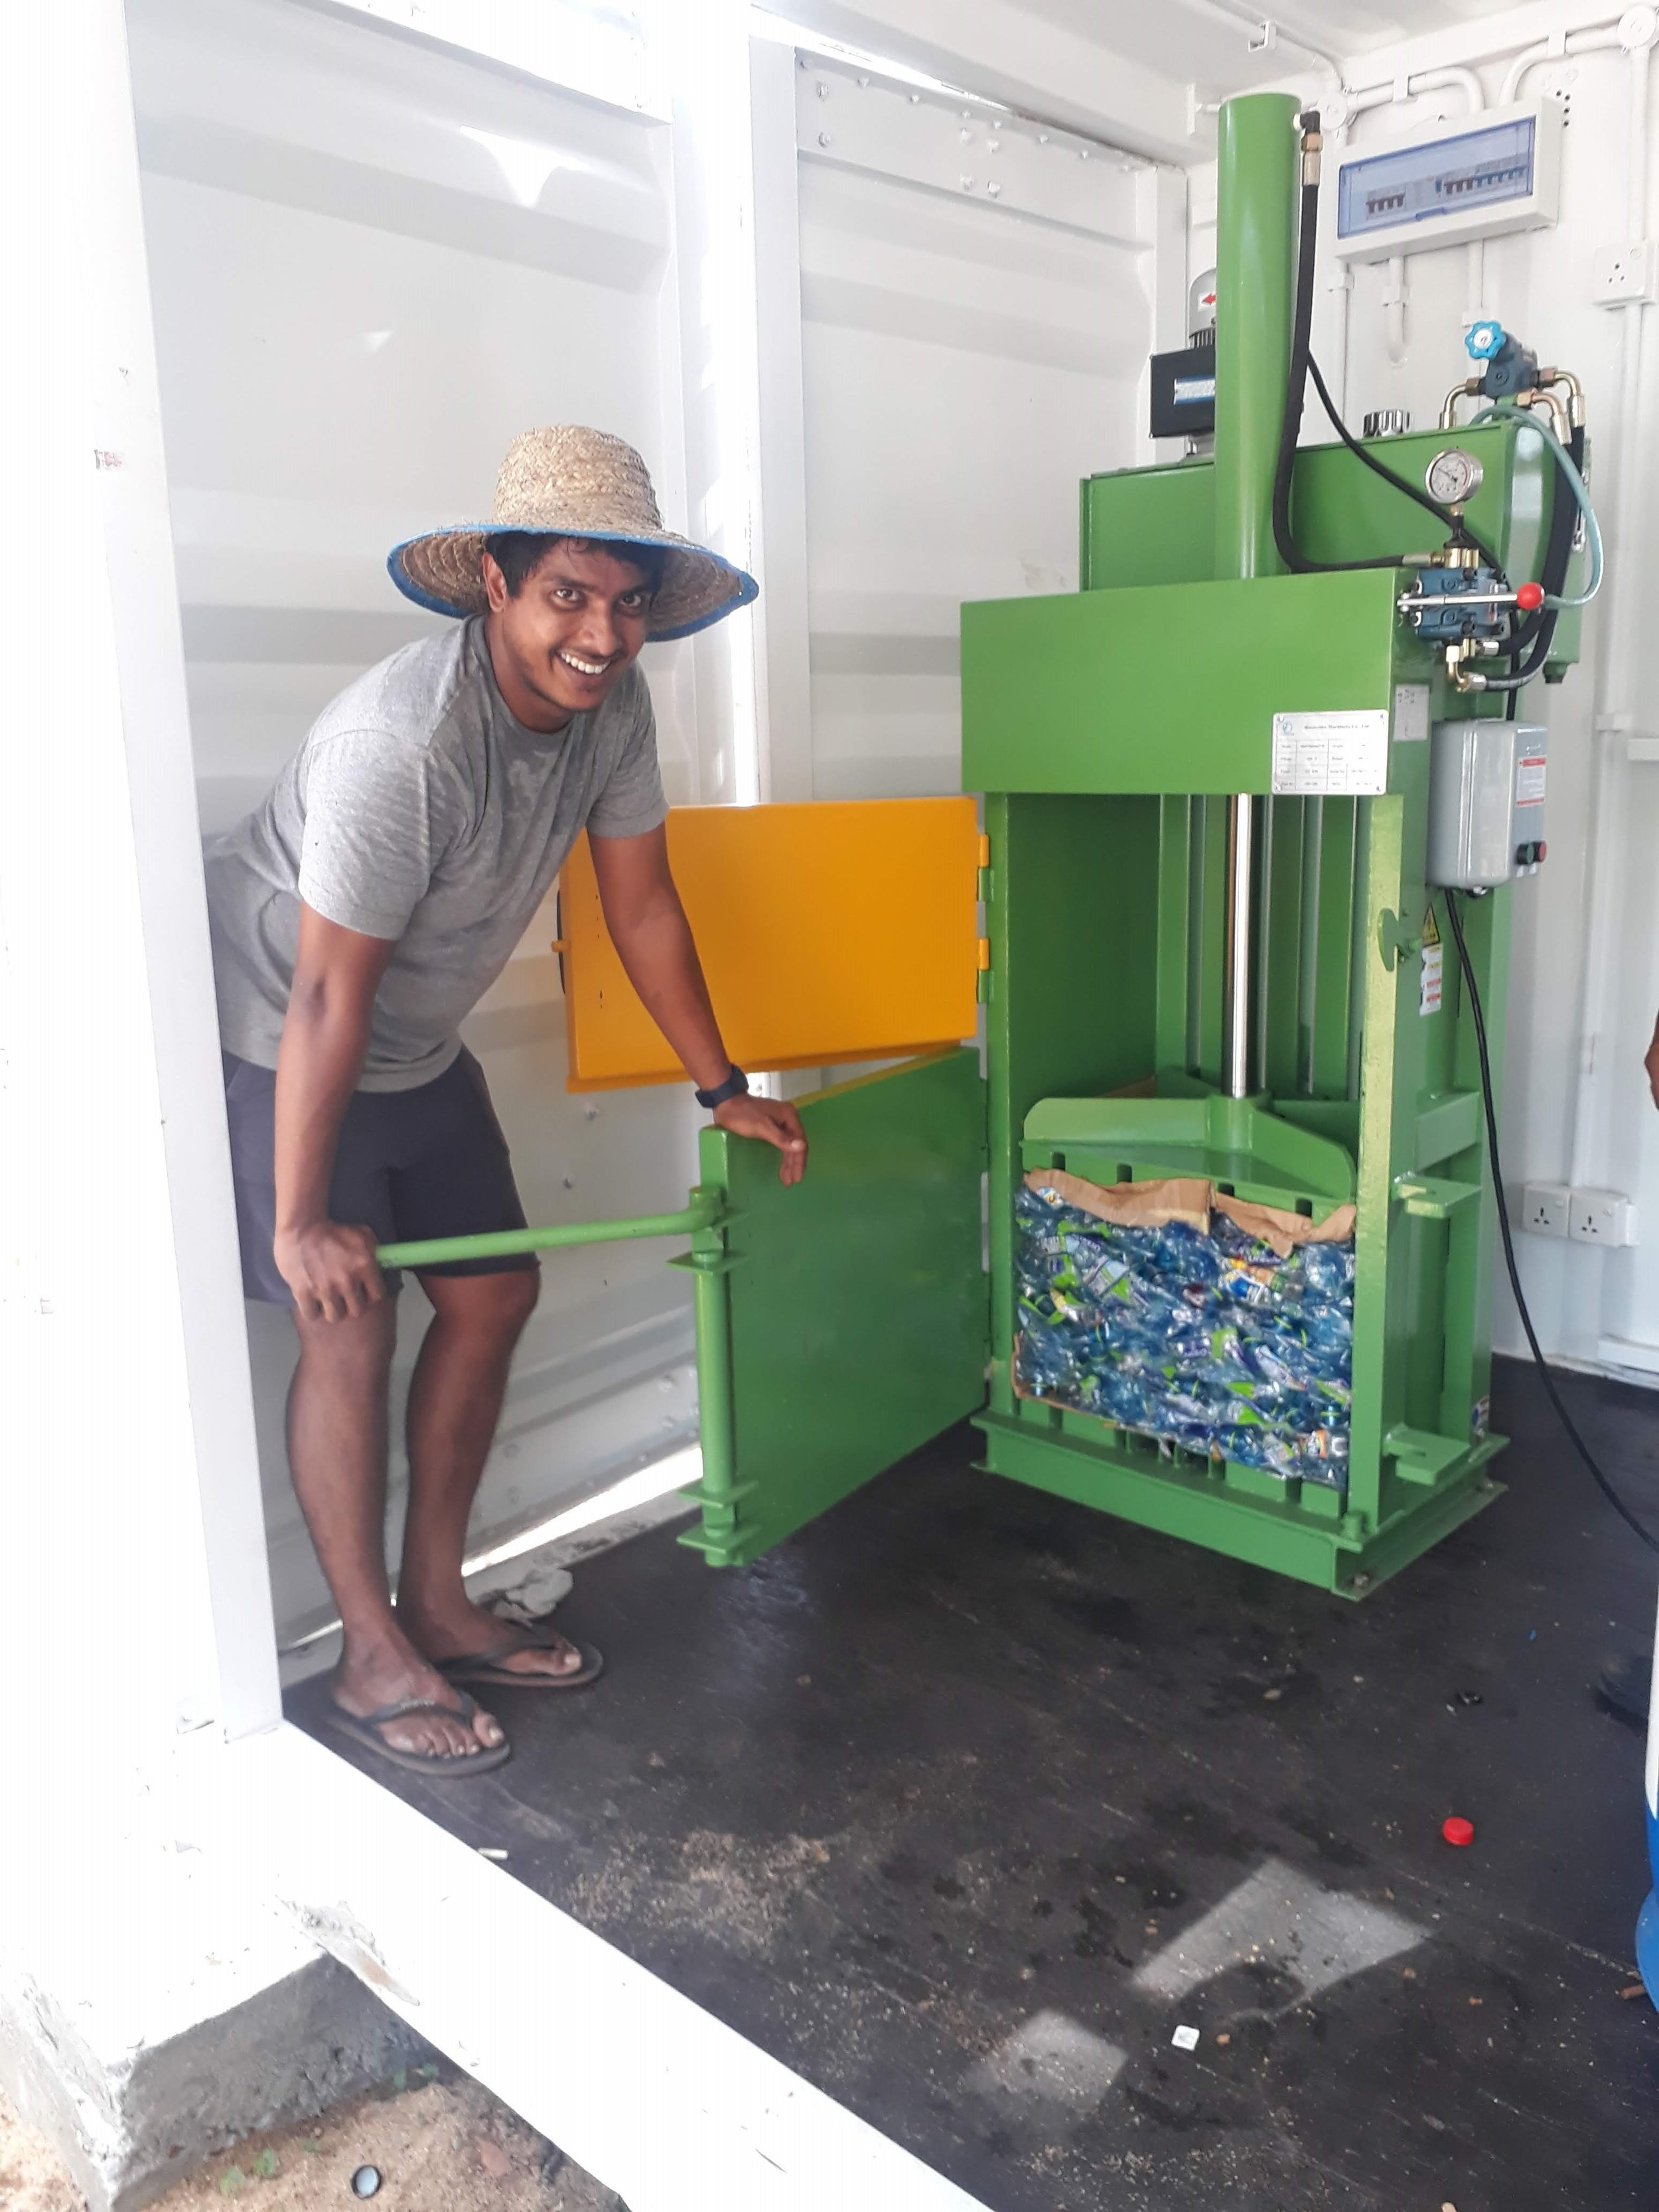 ... in this case our baling machine as tested by Co-Project Manager Fazry who worked in large scale paper recycling in Colombo for ten years. Now he is with us starting from scratch.